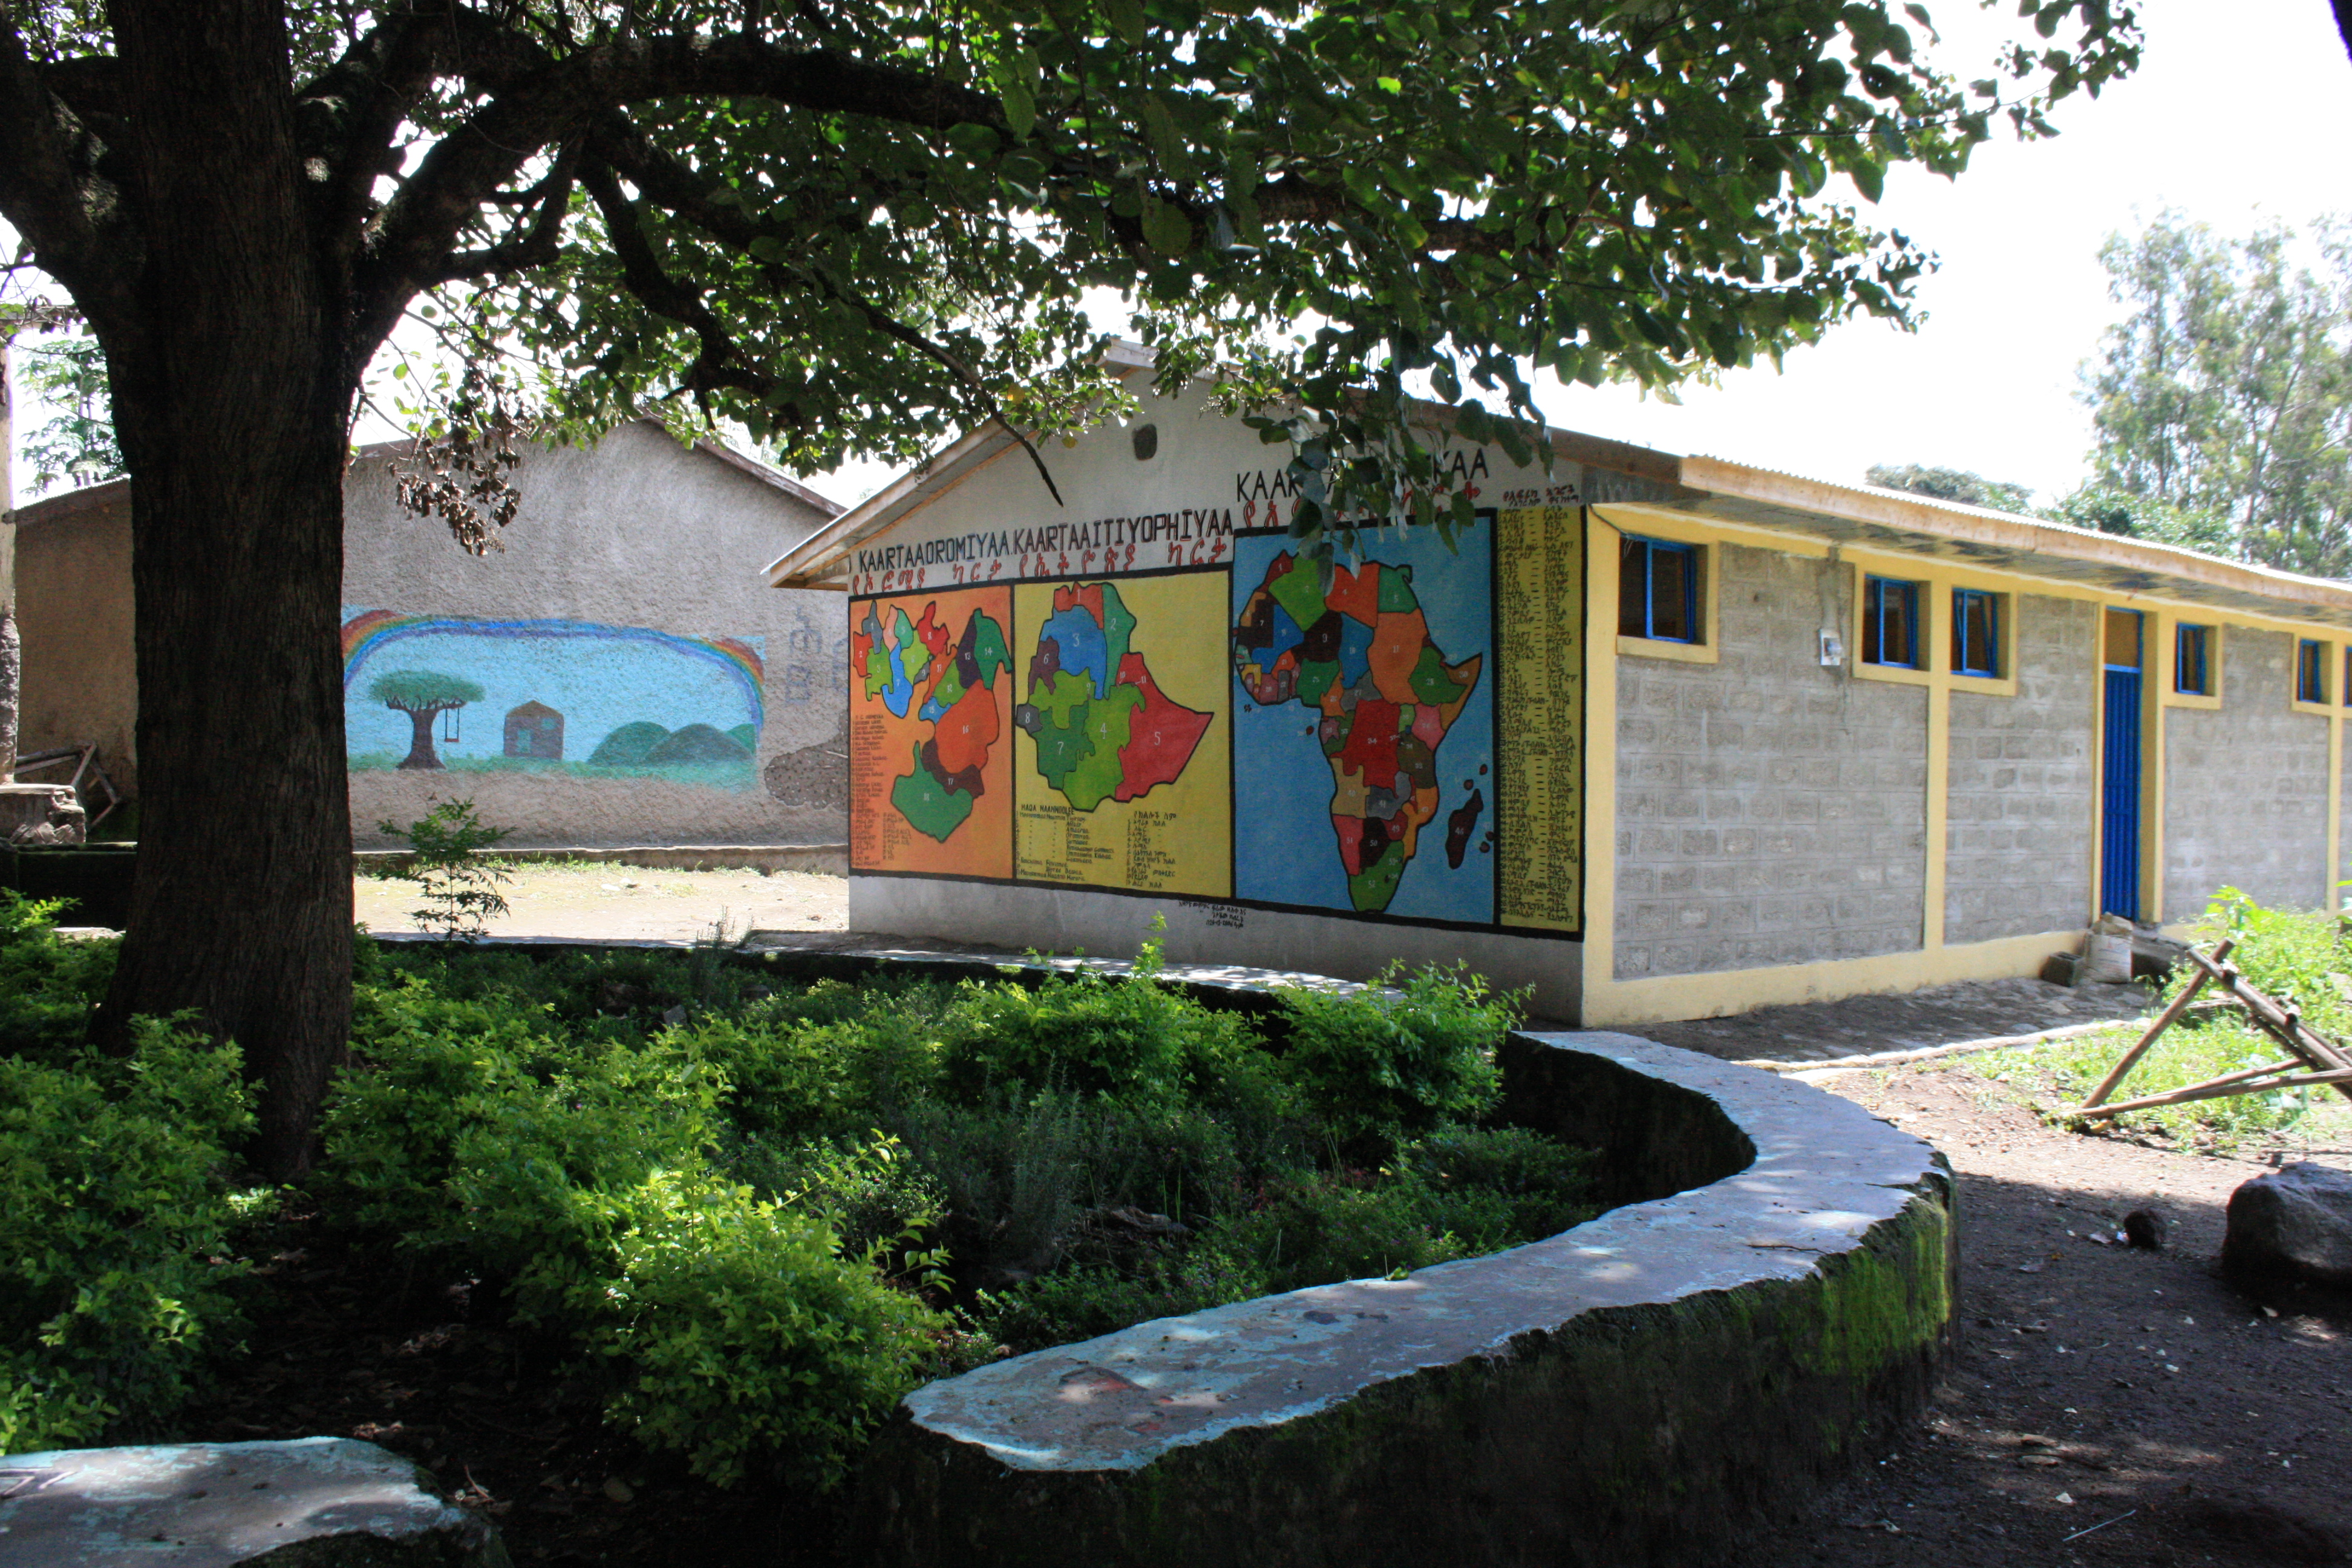 Cairo and UAS Dubai: helped with building a new toilet block by moving materials, as well as creating a beautiful garden. These have made a huge difference to the school. (Kera Hora)